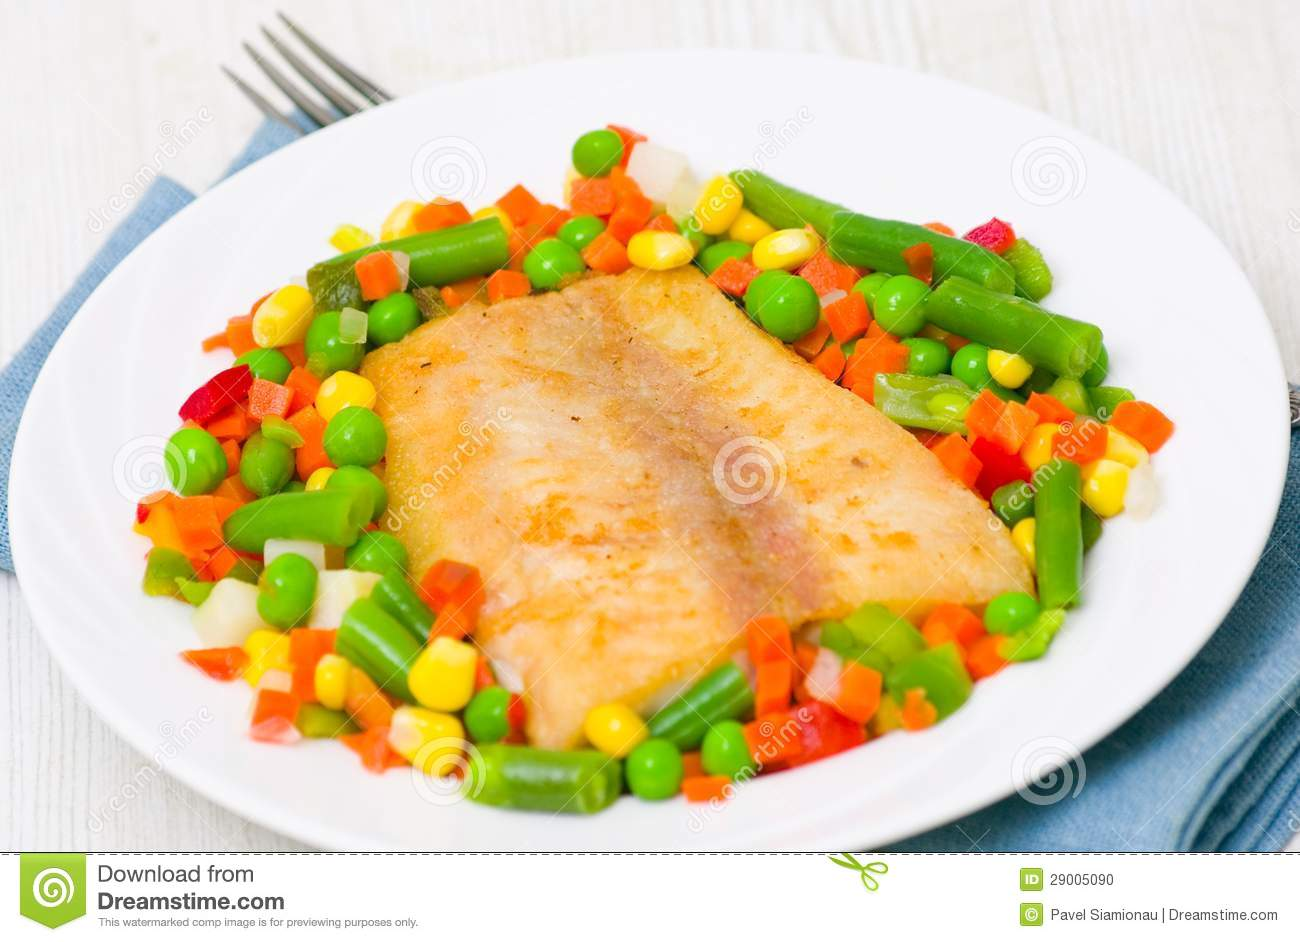 Fried fish with vegetables stock photo image 29005090 for What vegetables go with fish